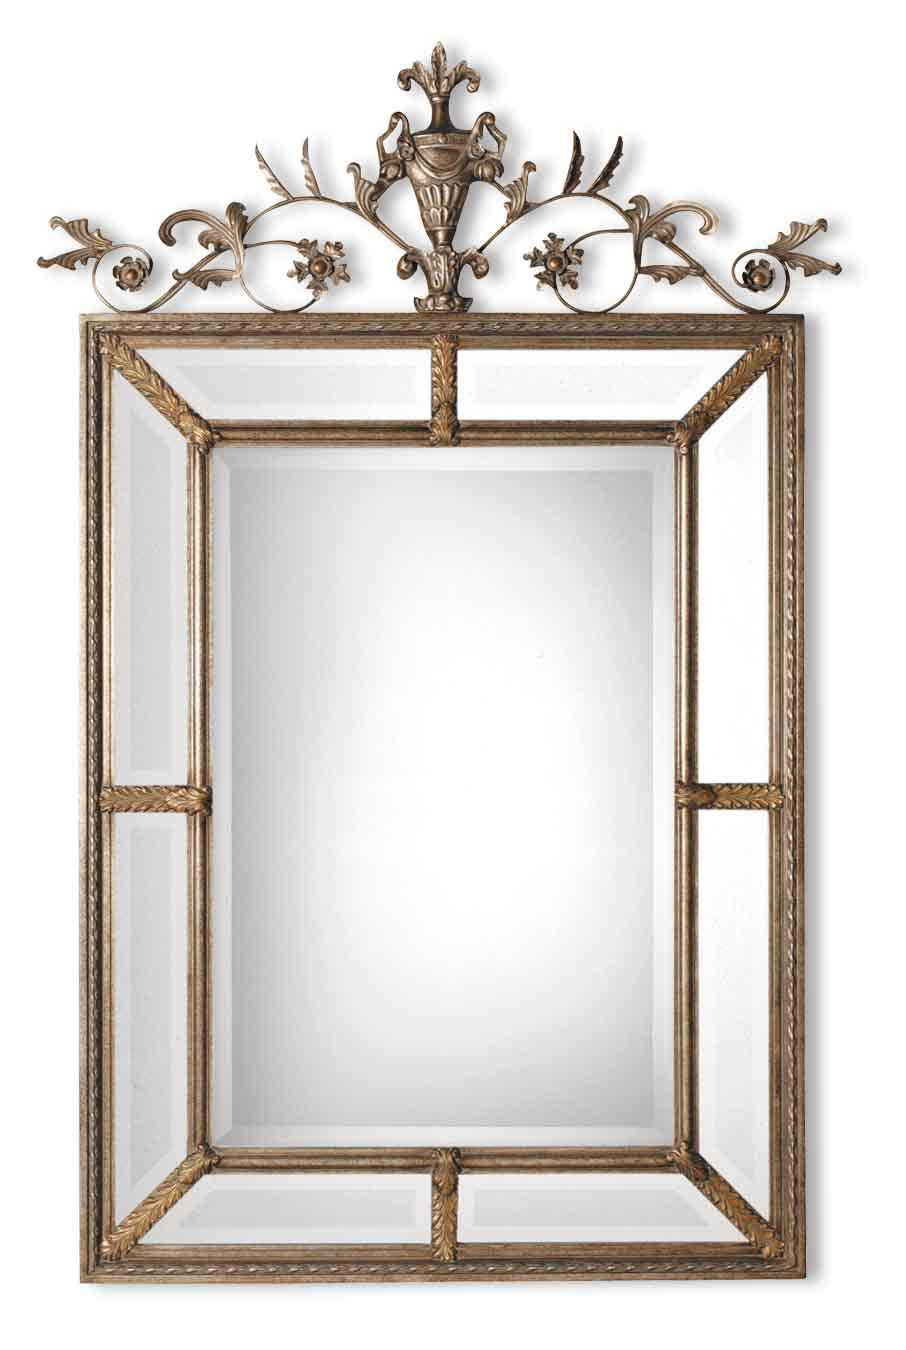 Uttermost Mirrors Le Vau Vertical - Item Number: 11201 B